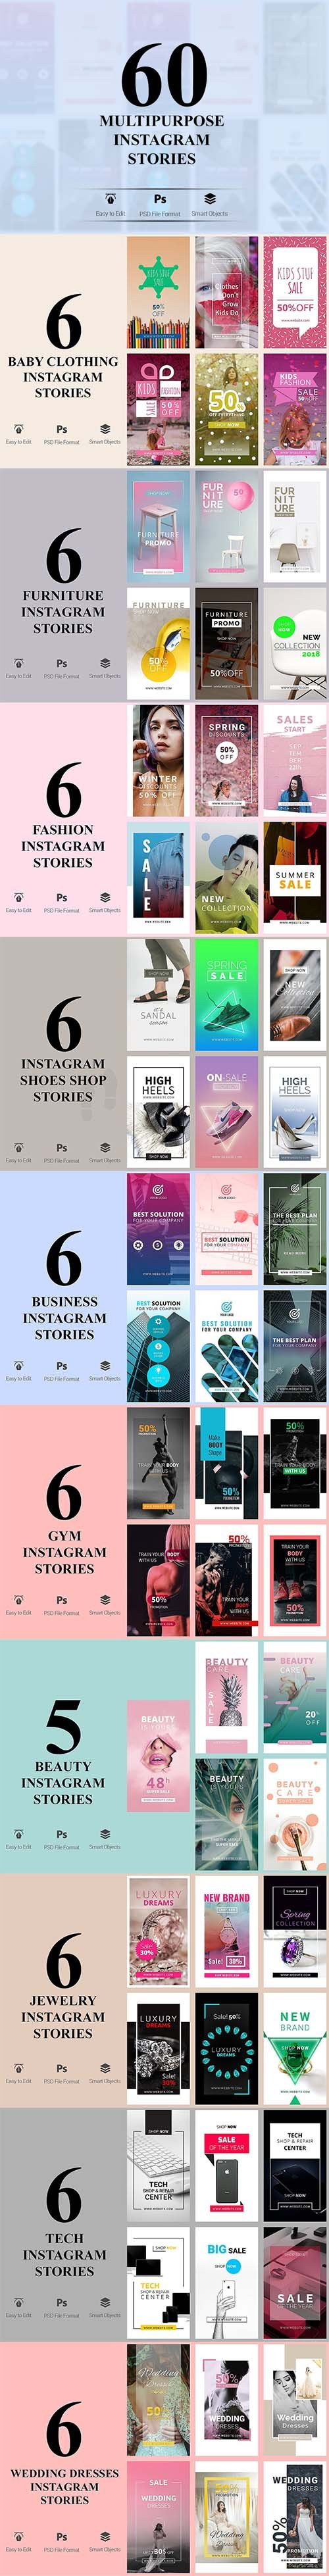 60 Multipurpose Instagram Stories - CM 2185373